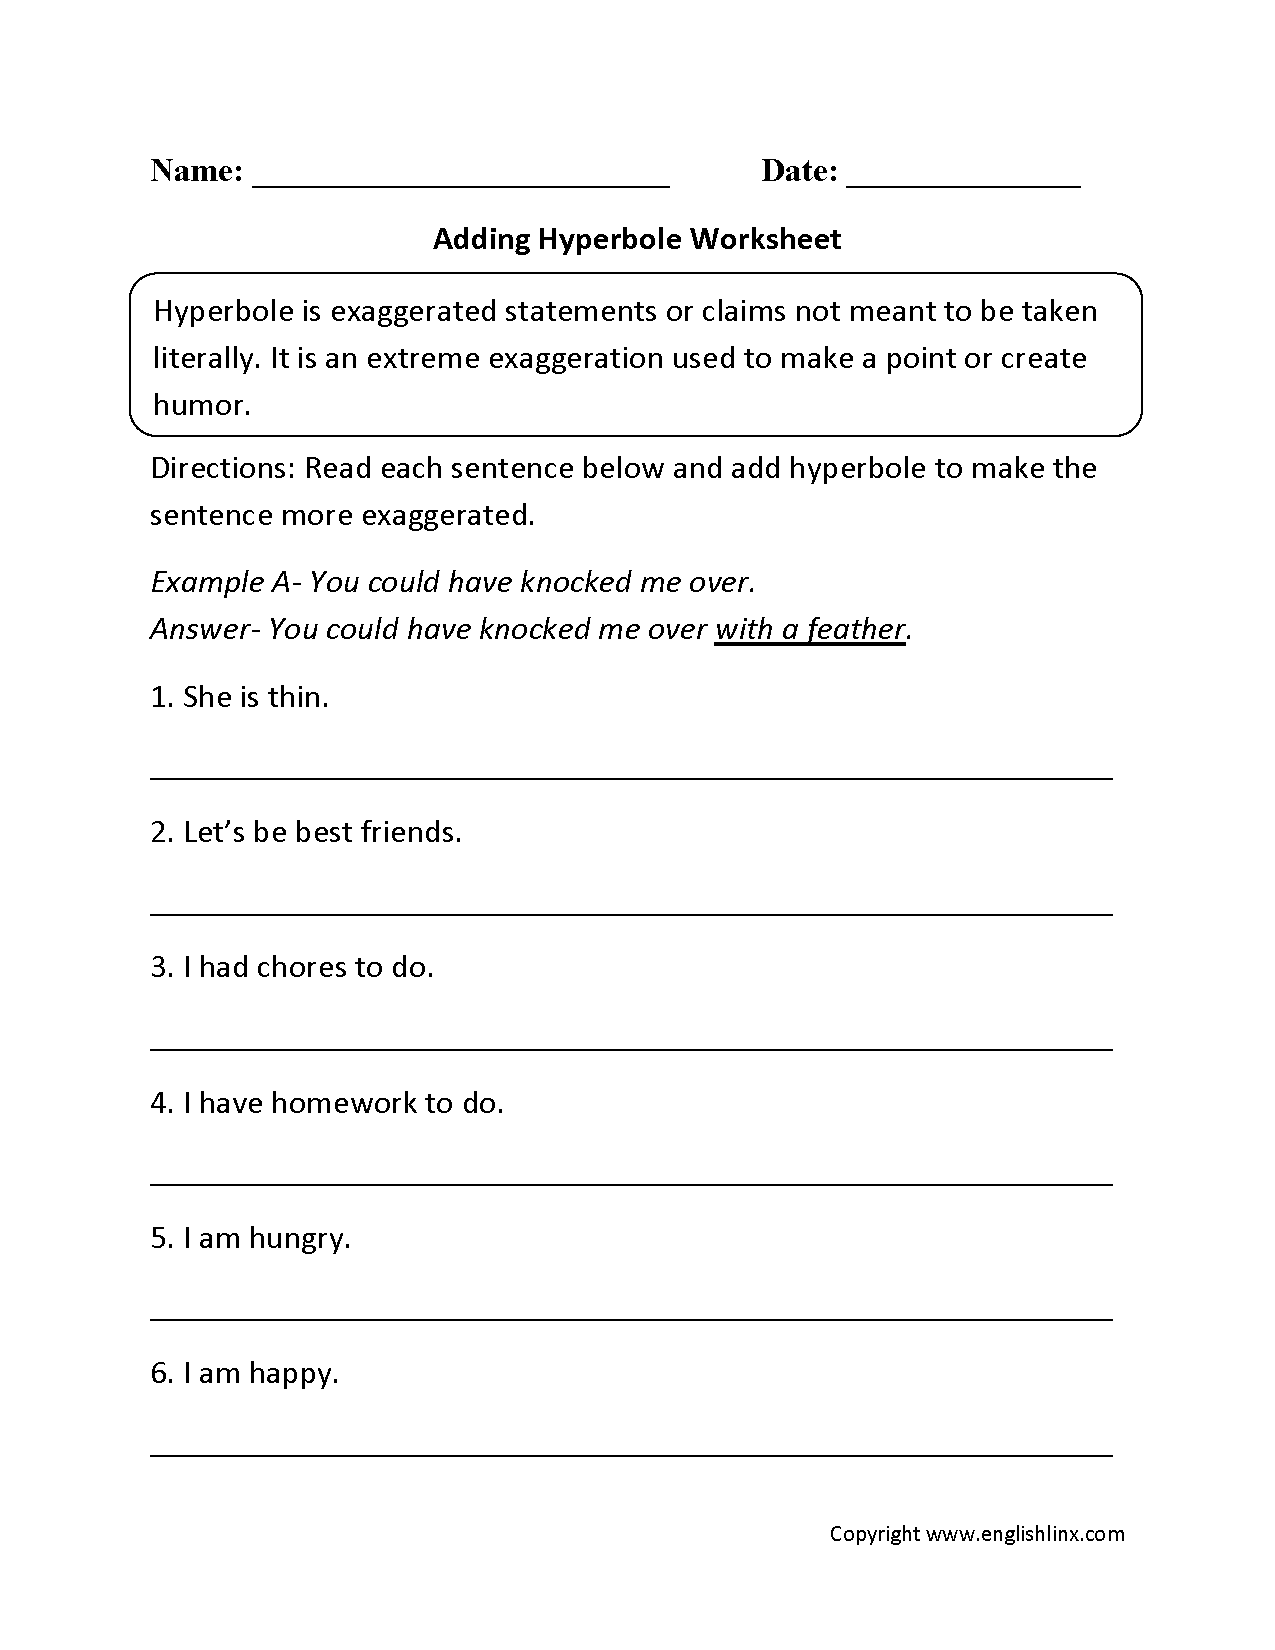 Haiku worksheets for middle school